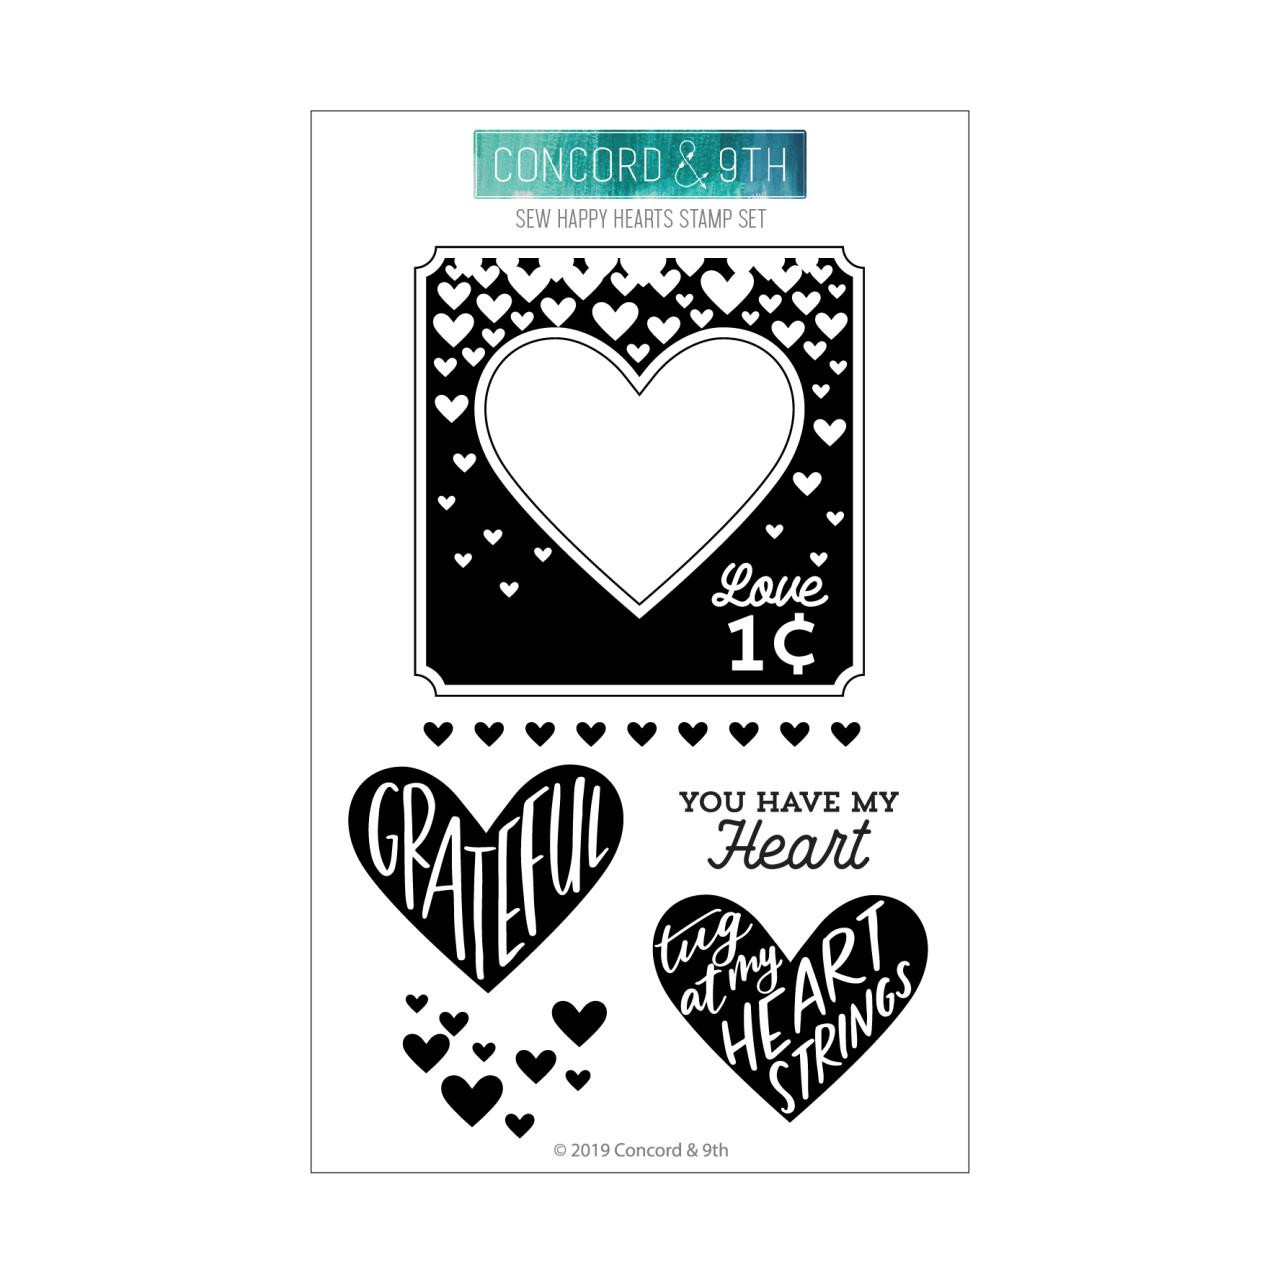 Sew Happy Hearts, Concord & 9th Clear Stamps - 090222401235